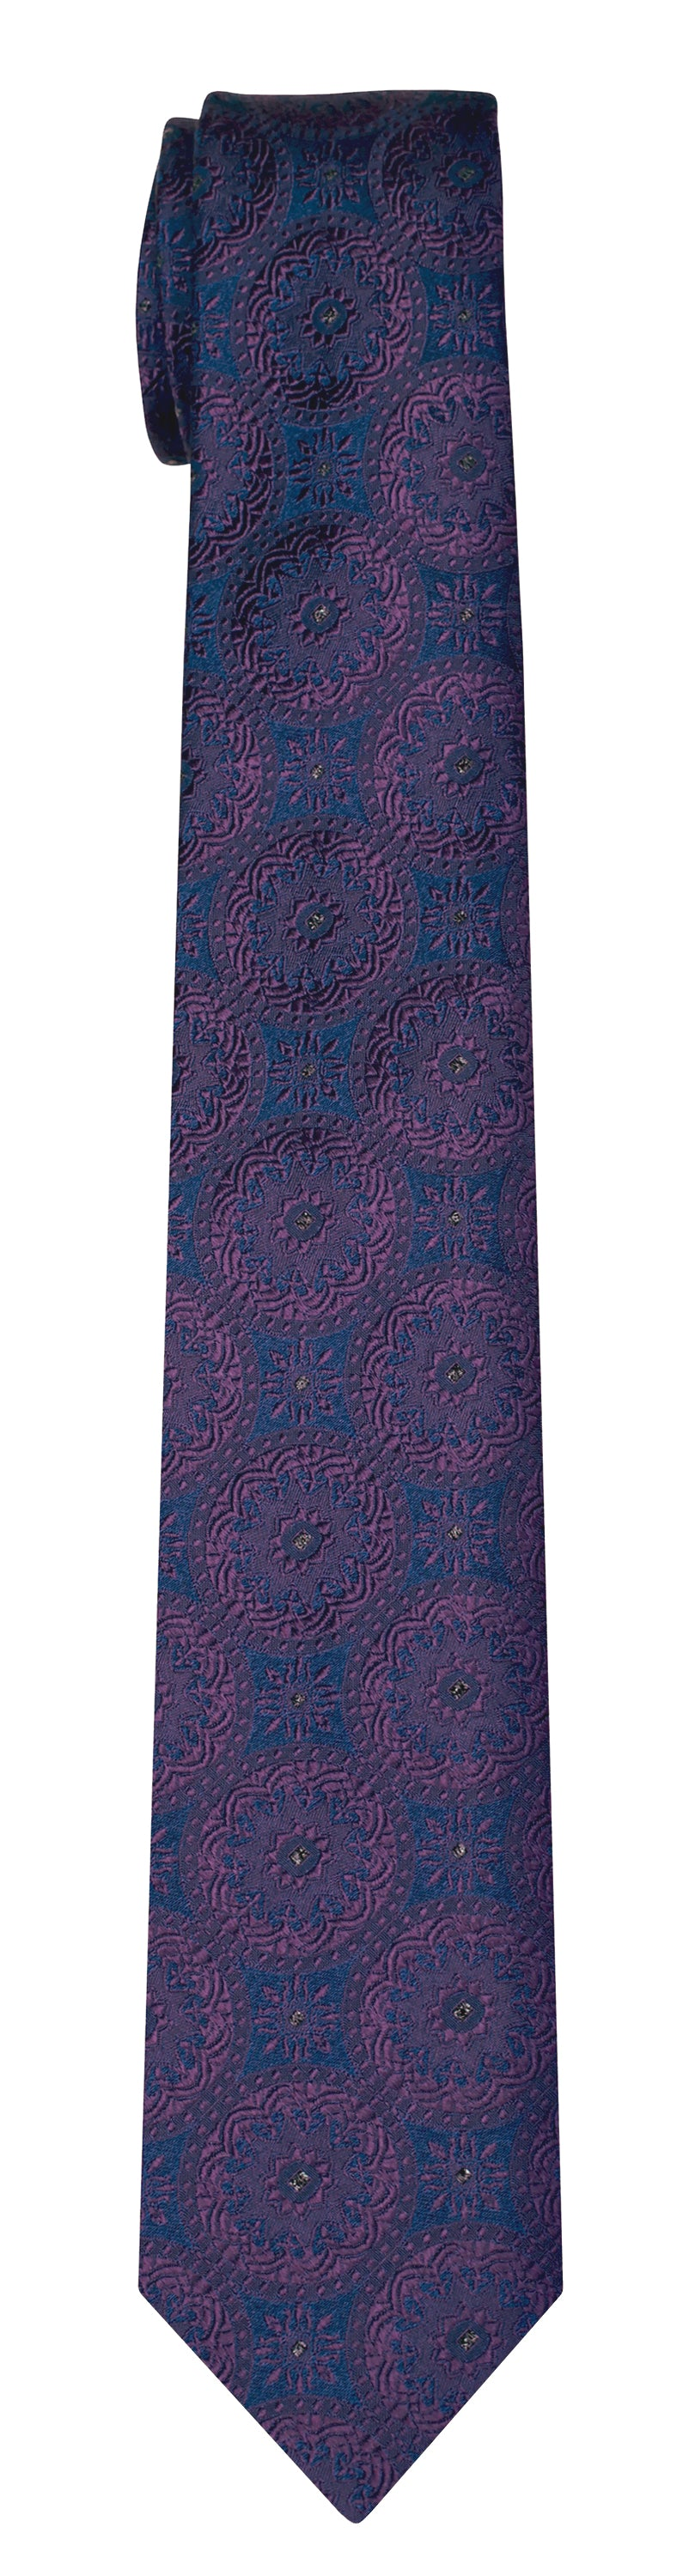 Mimi Fong Coin Tie in Midnight